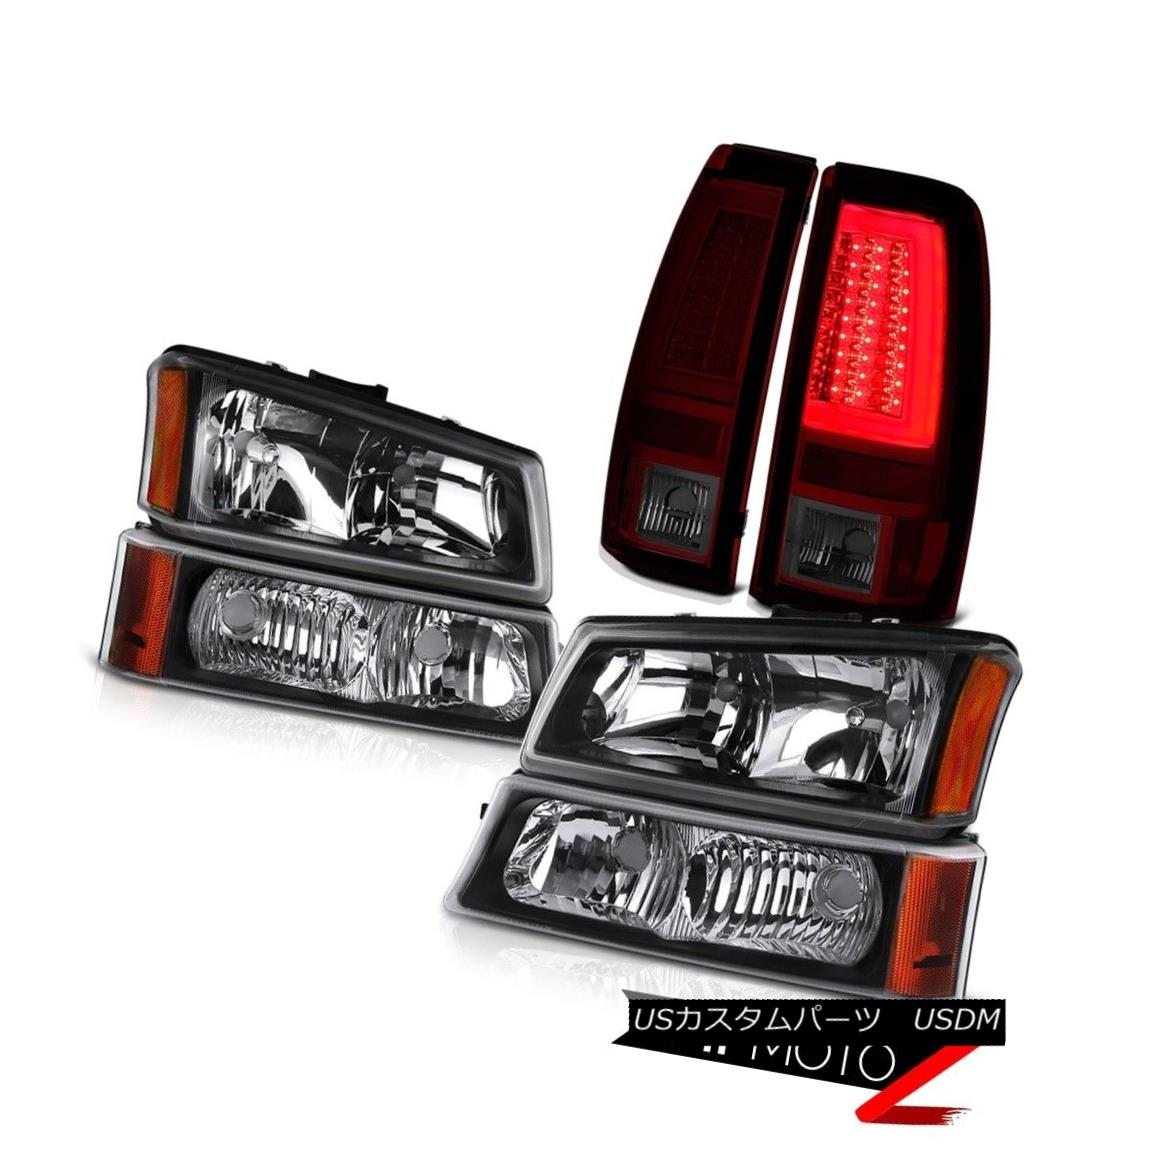 テールライト 03 04 05 06 Chevy Silverado Tail Lights Black Turn Signal Headlights